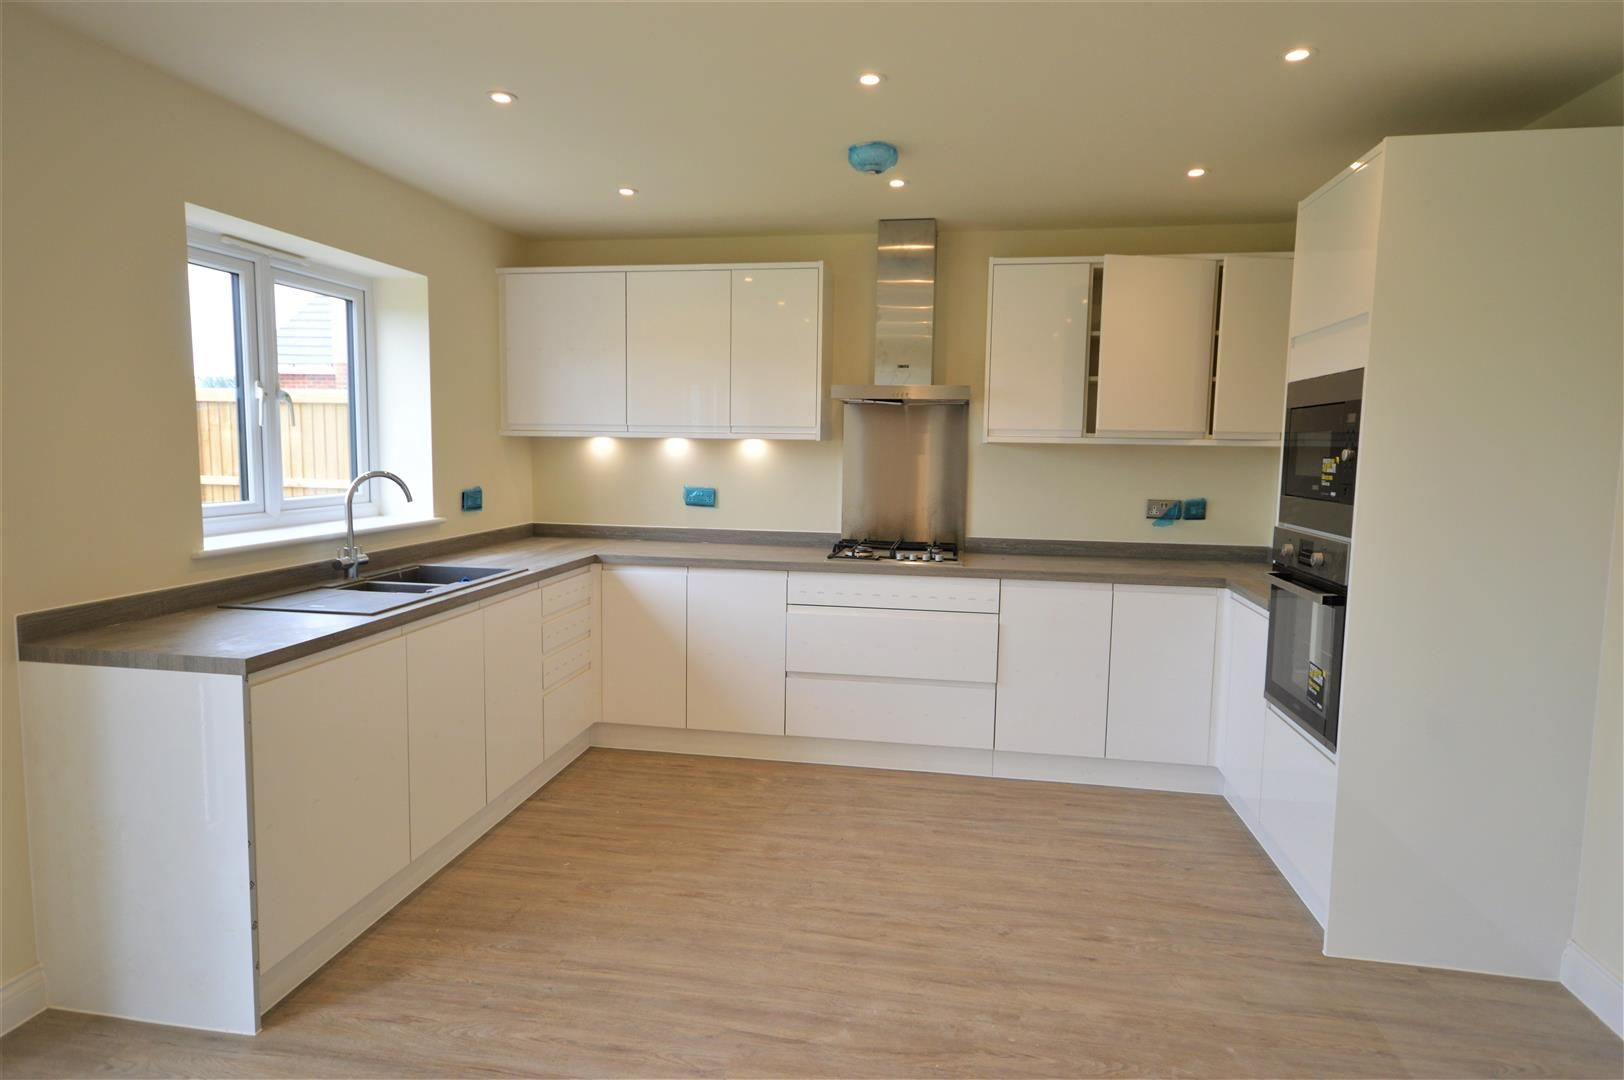 4 bed detached for sale in Kingsland 2